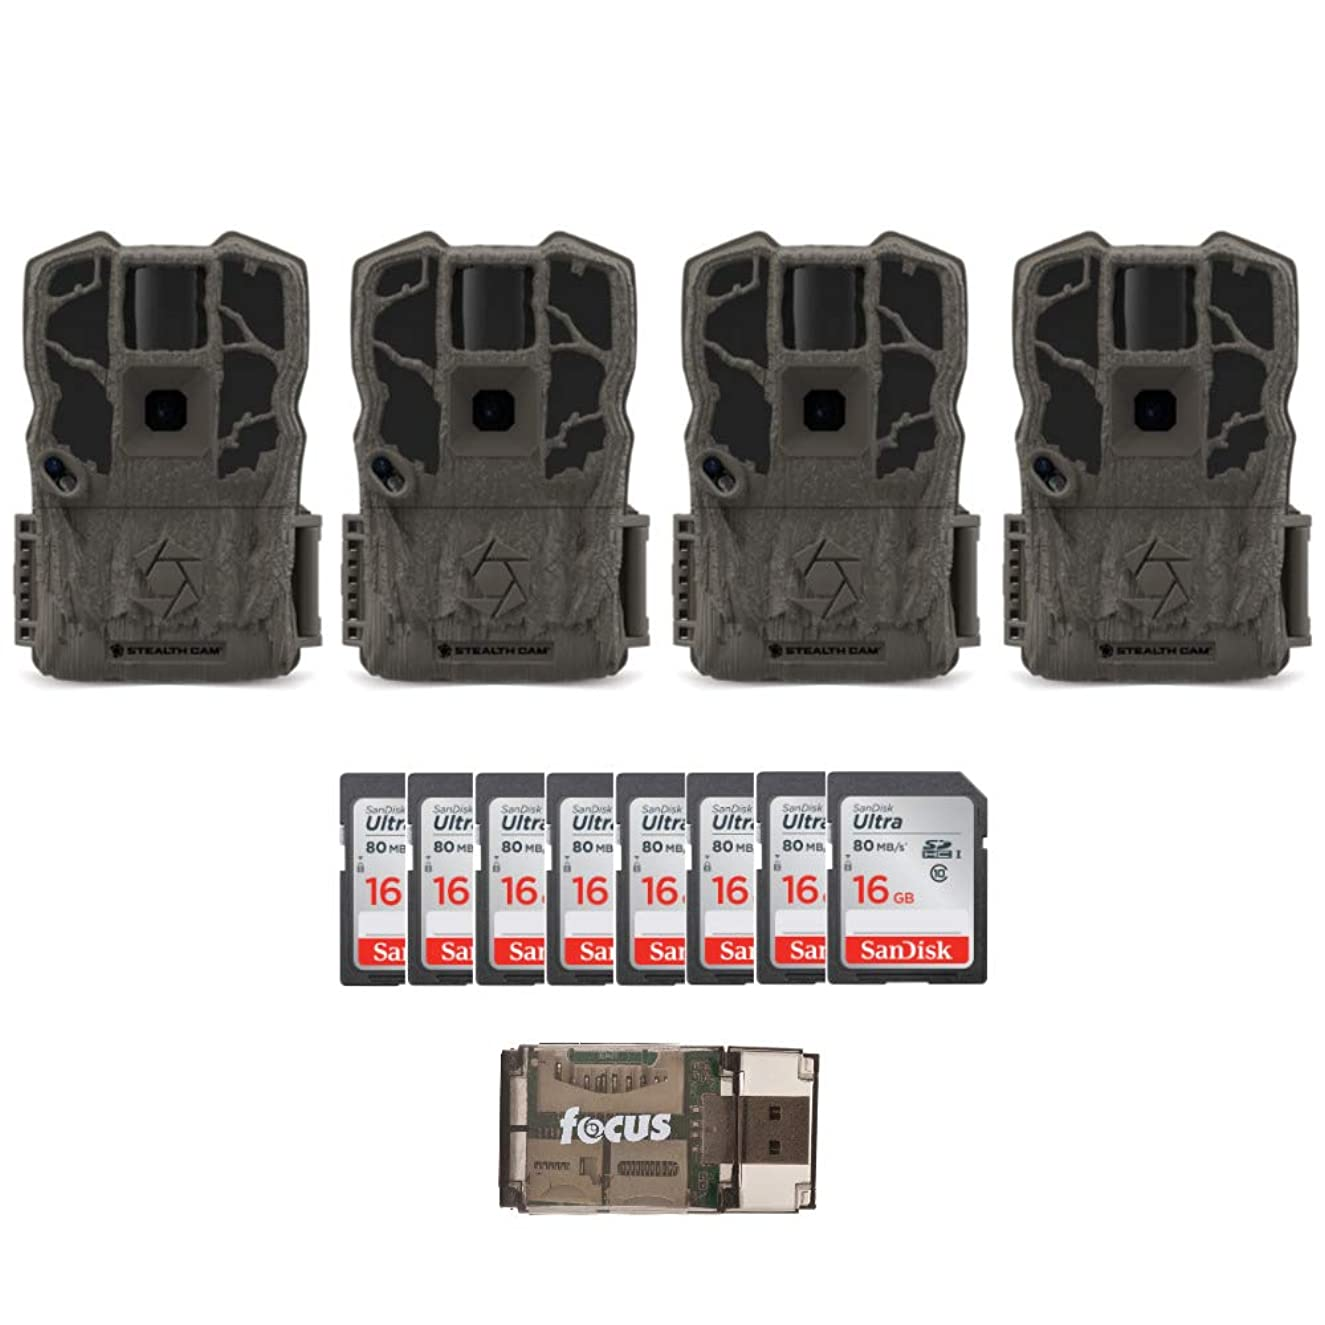 Stealth Cam G34 Max Pro 26MP Trail Camera 4-Pack, with Eight 16GB Memory Cards, and Focus USB Card Reader Bundle